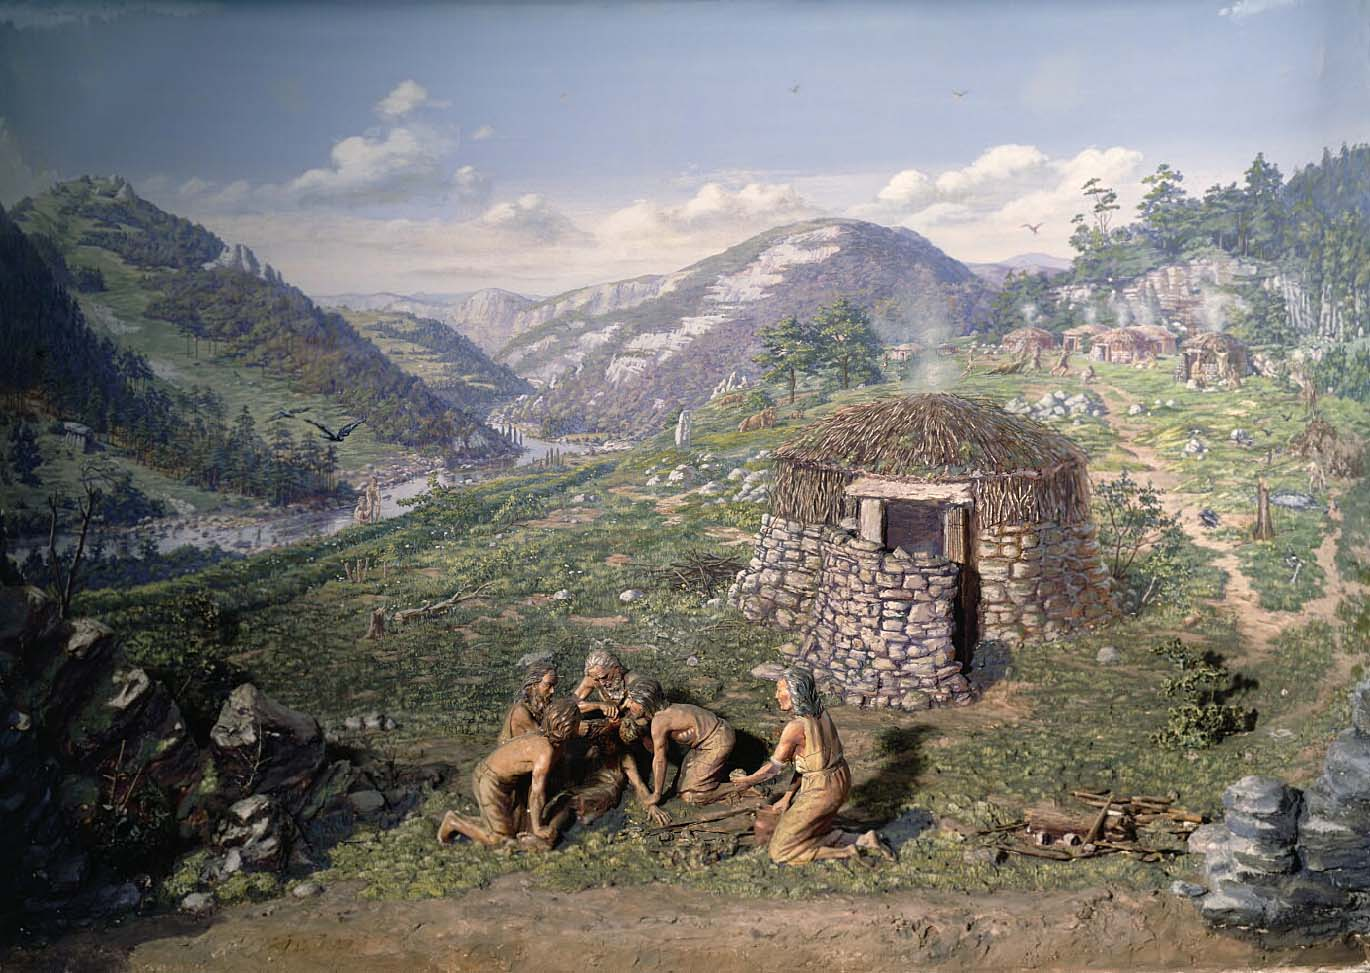 a model of a group of people performing on operation outside a small stone roundhouse